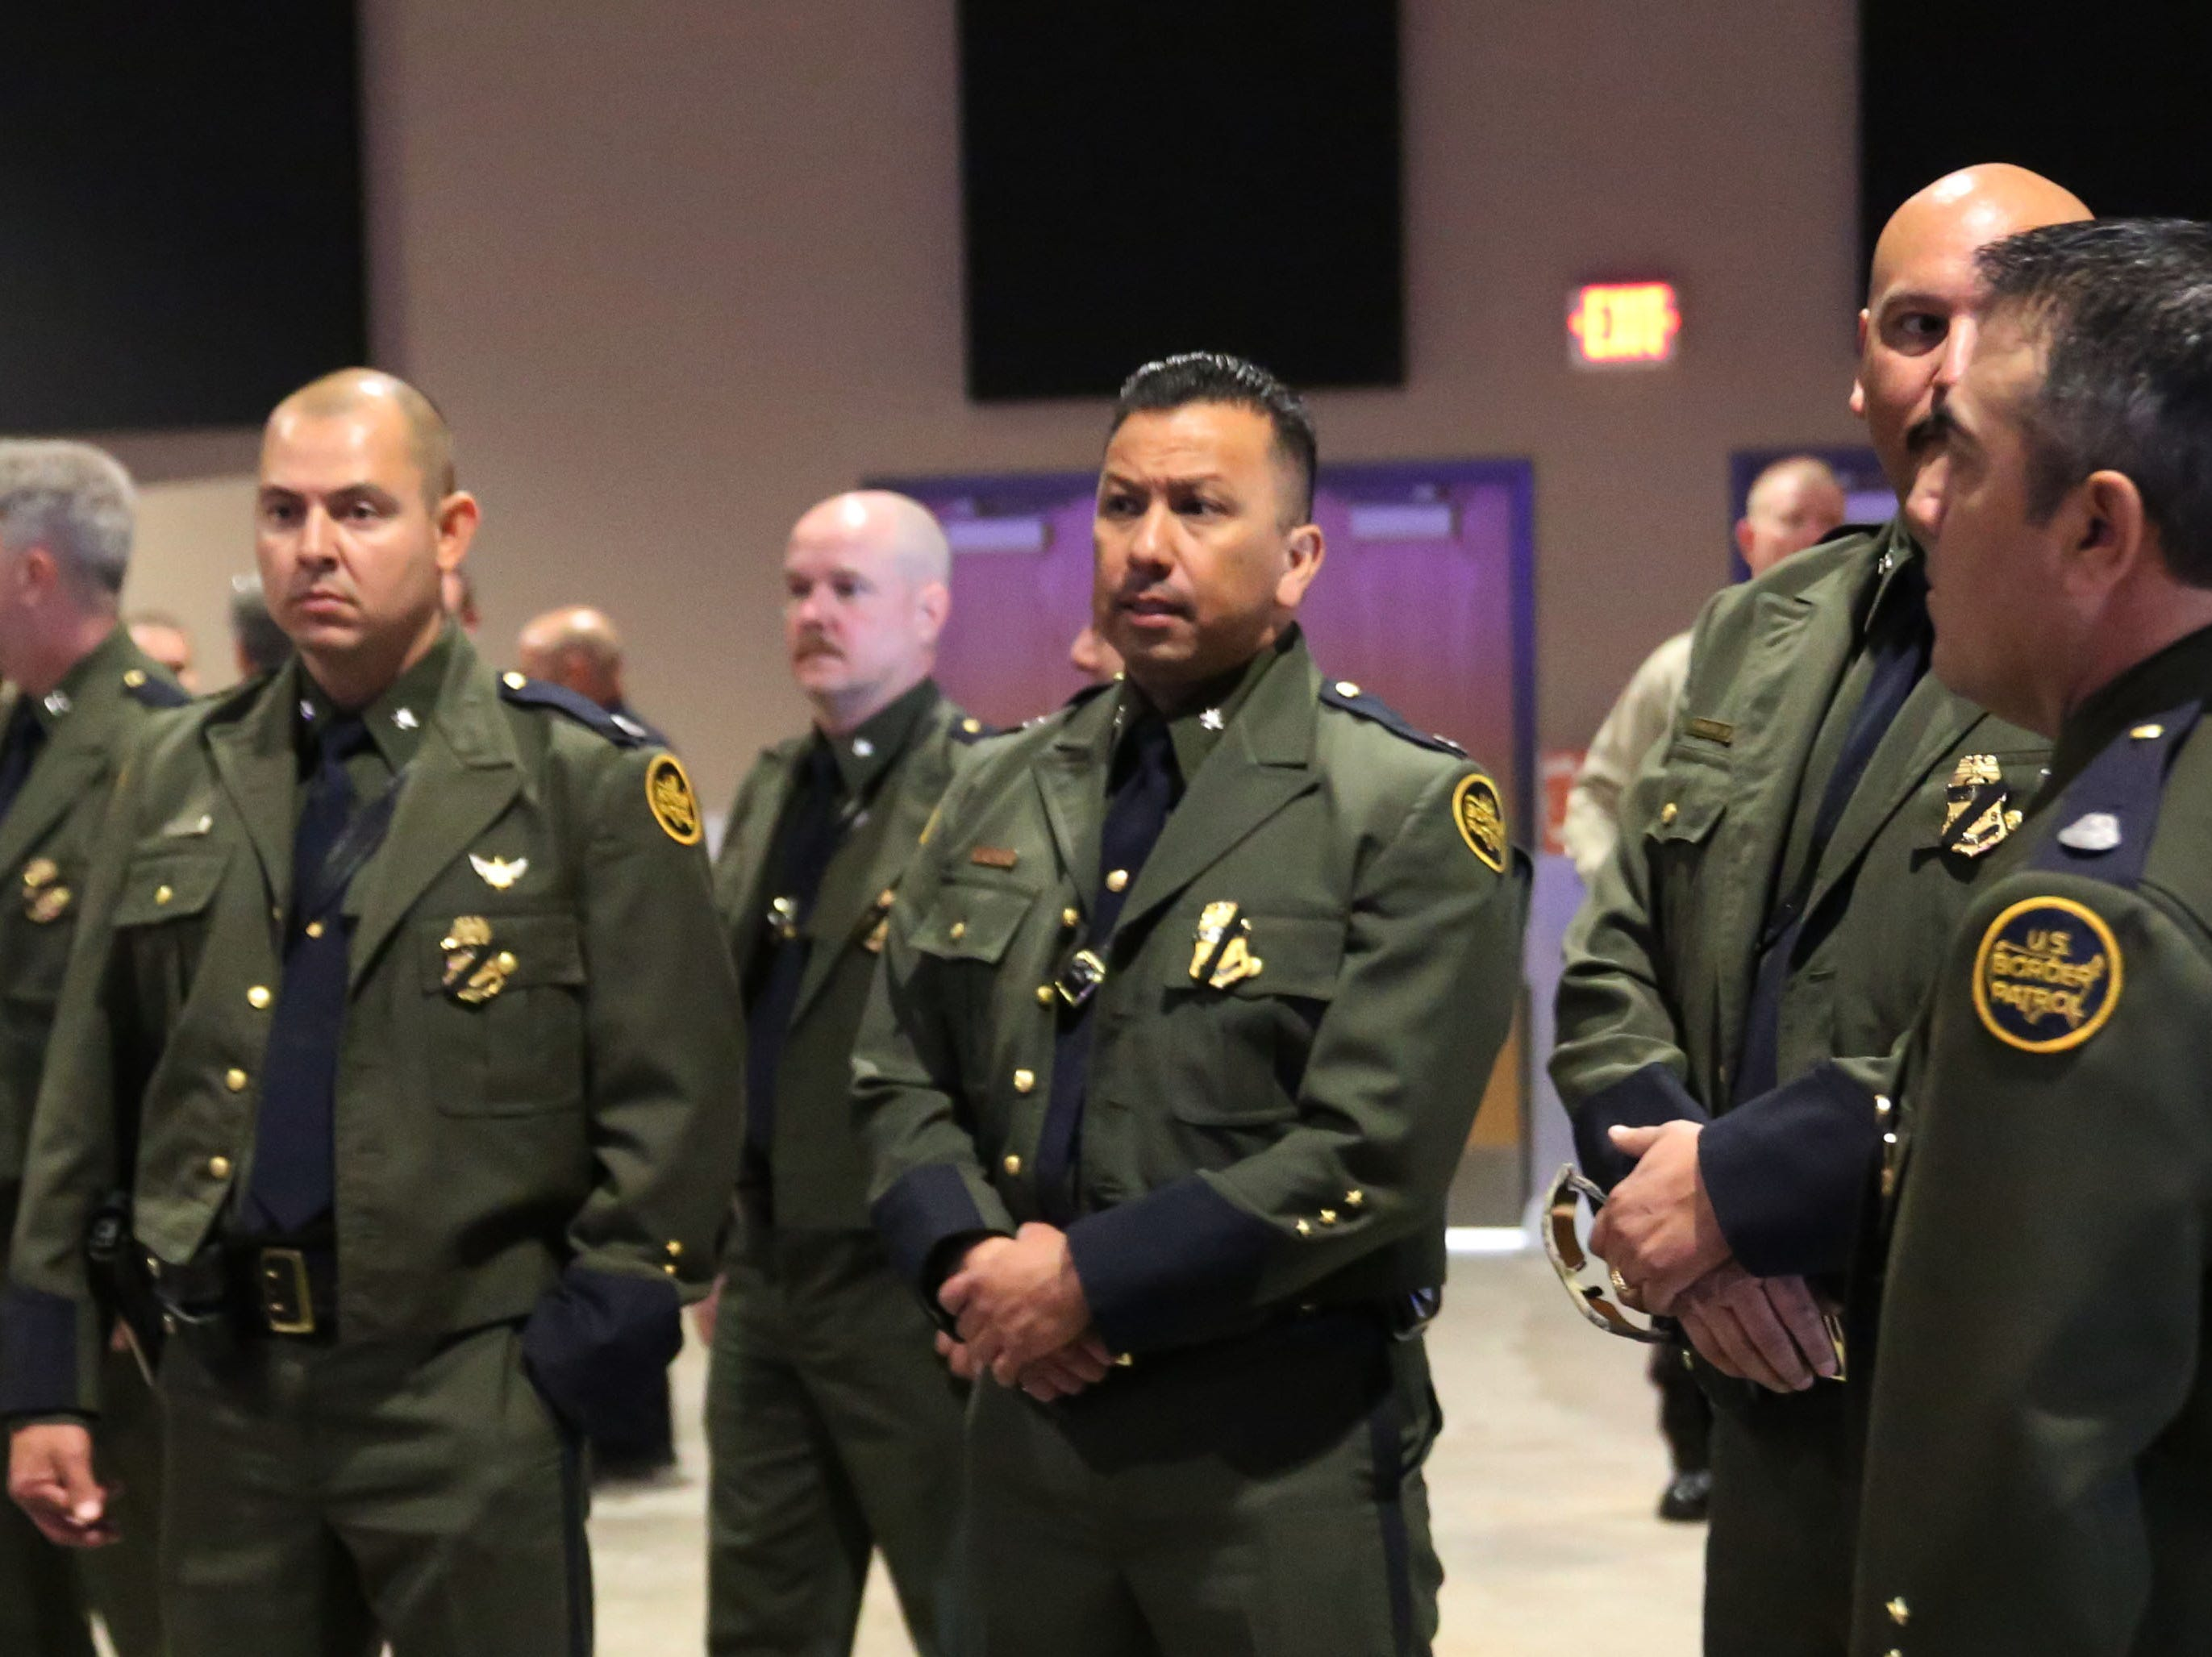 Border Patrol agents wait for a ceremony to begin at the Fallen Officer Memorial in Las Cruces, Tuesday May 7, 2019.